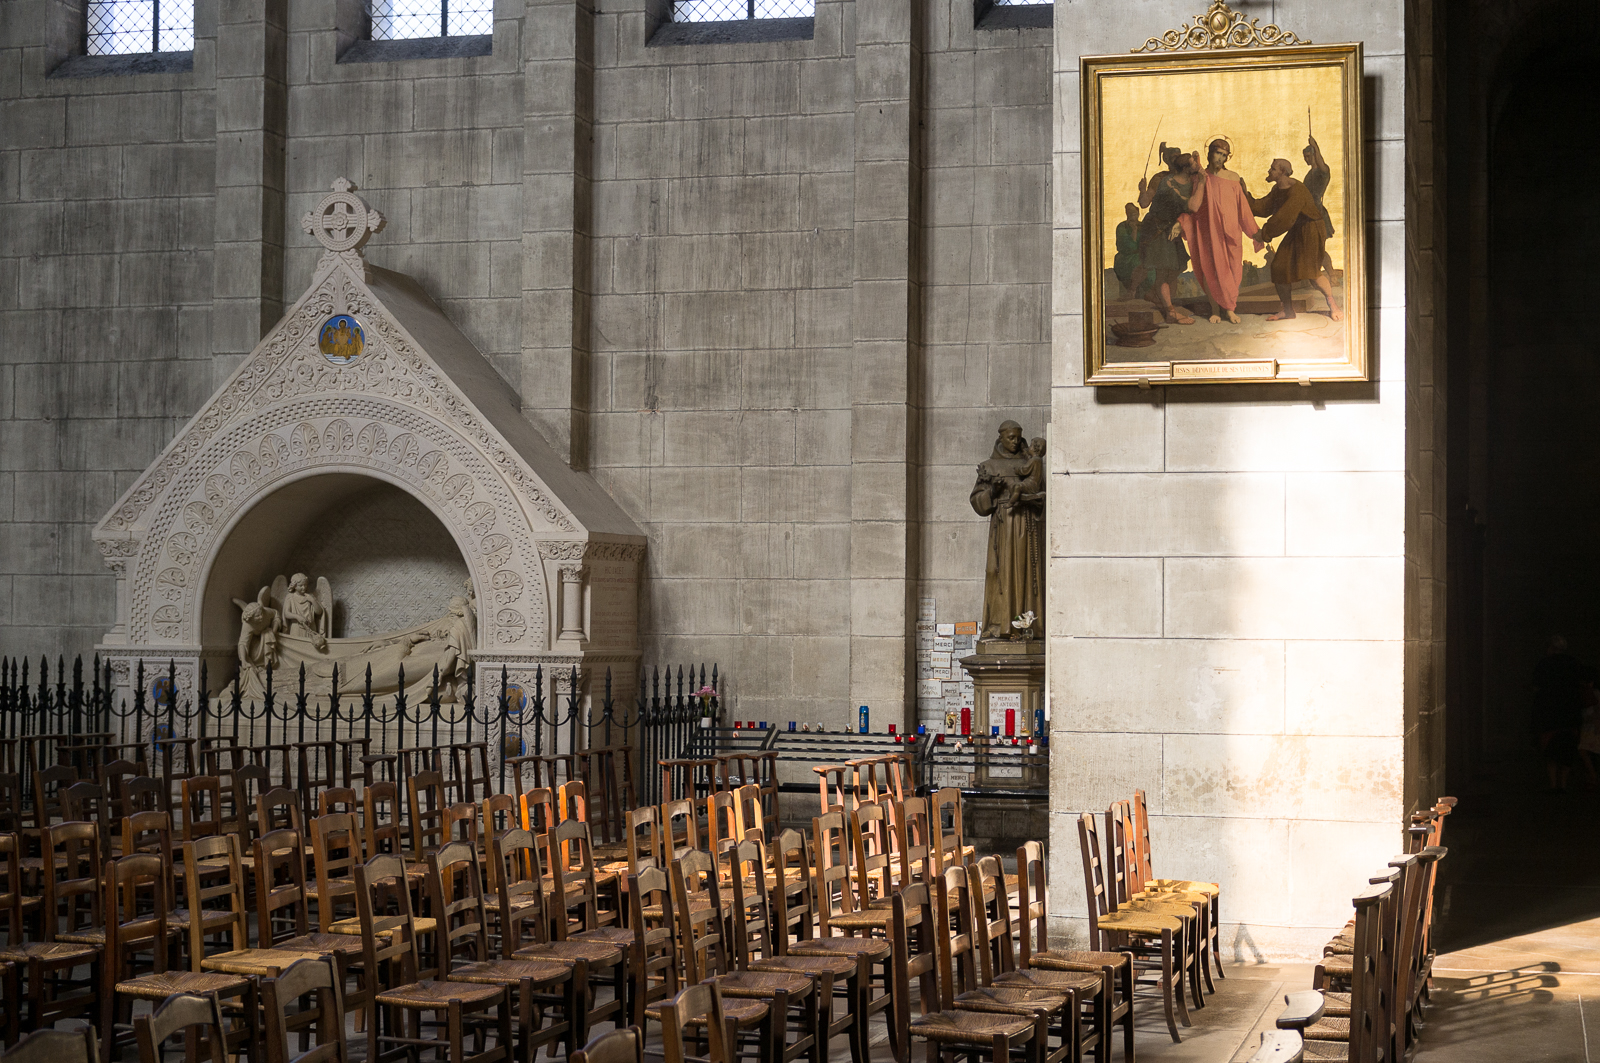 Cathedral of Saint-Front  - Photo by Asgeir Pedersen, Spots France